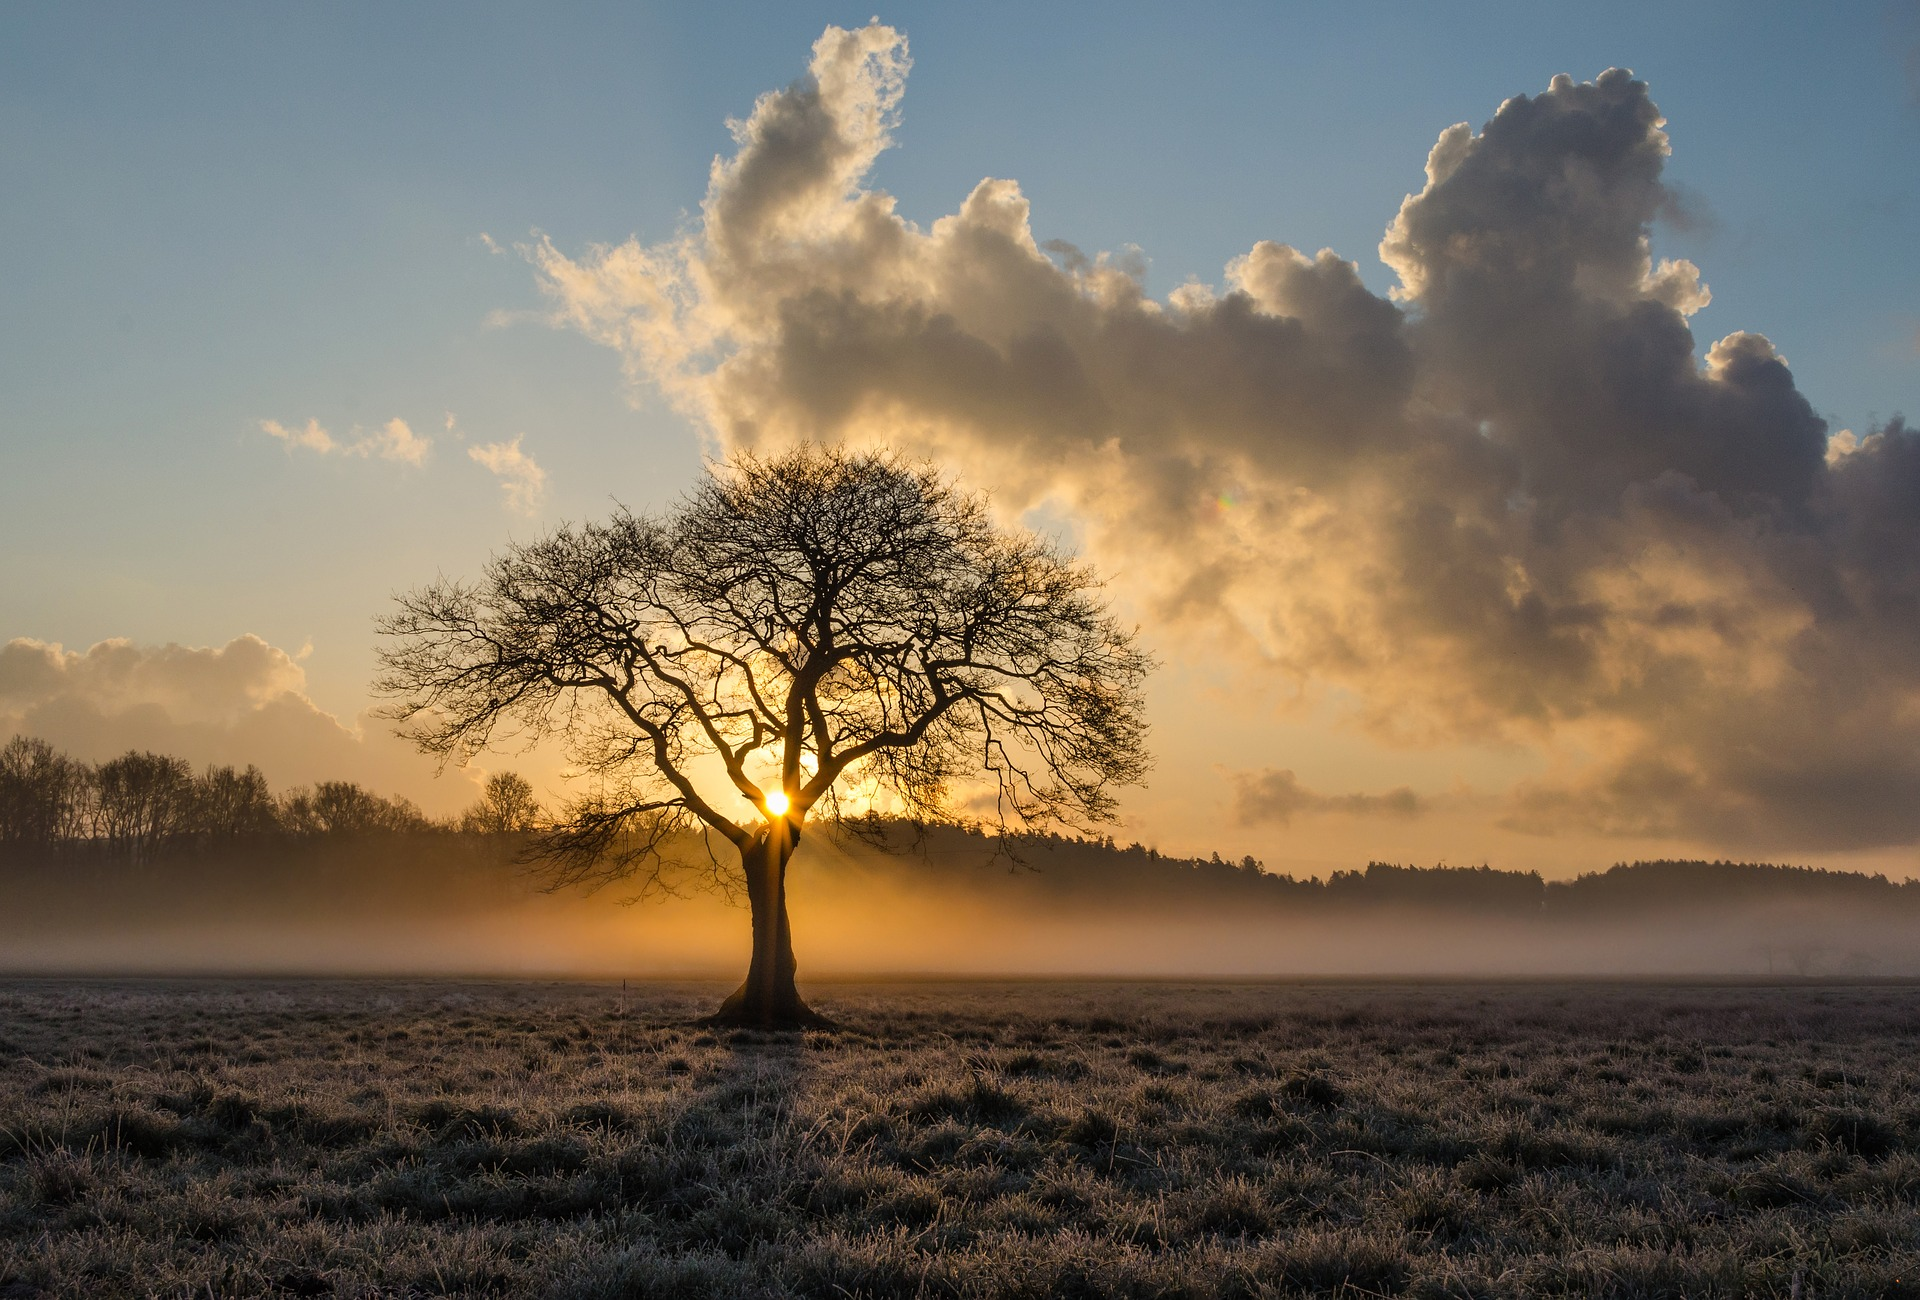 lone-tree-Fatherheart-France